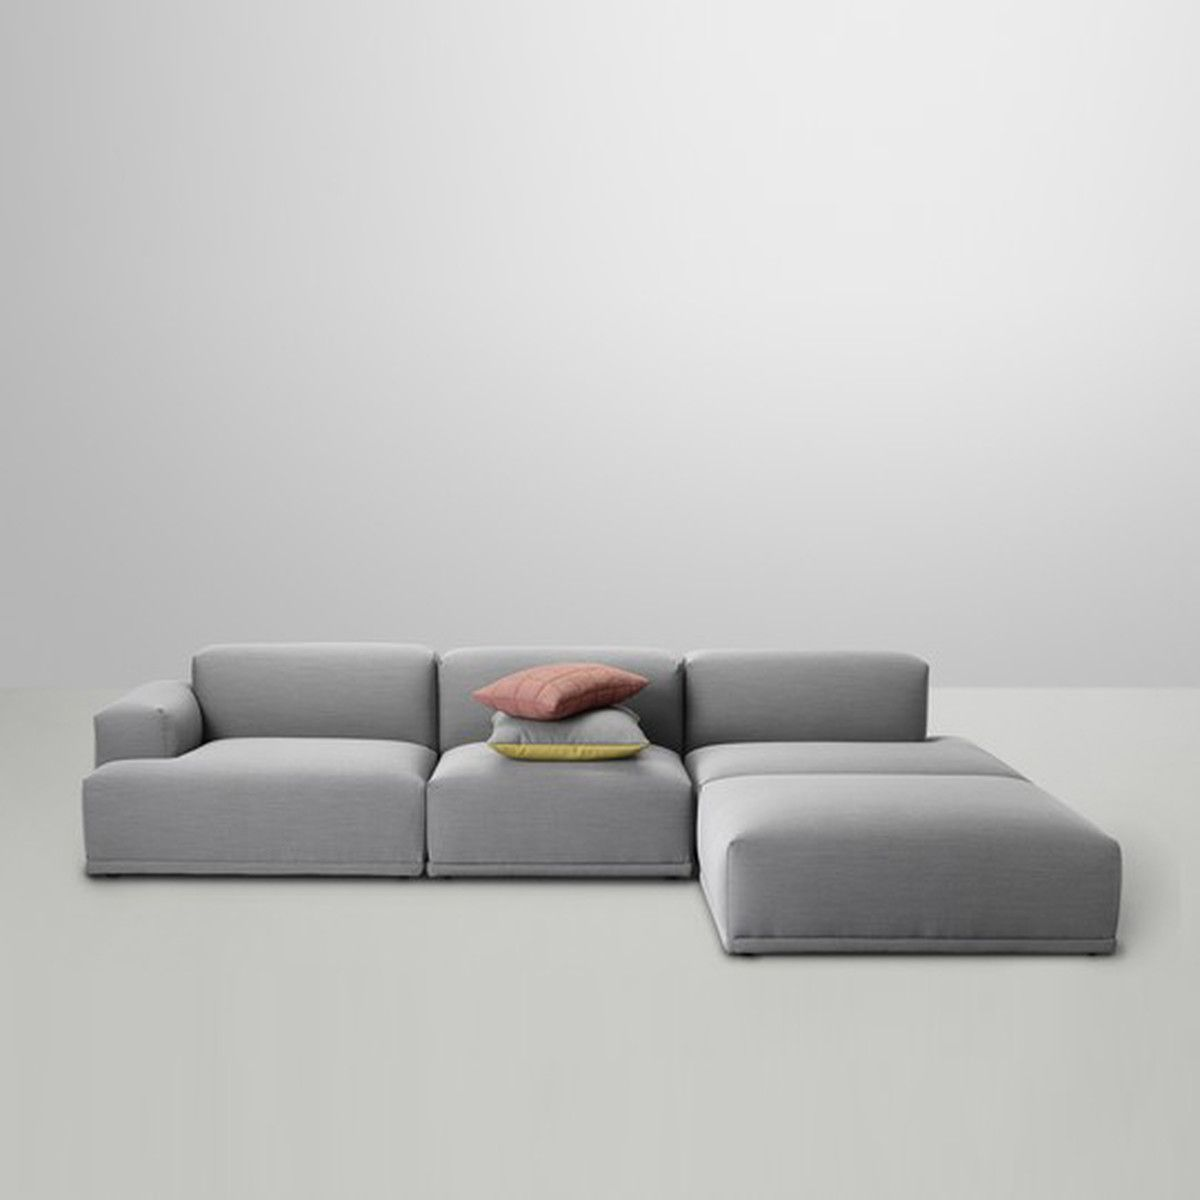 Connect Sofa | Muuto | Shop | Pinterest | Furniture ideas, Living ...